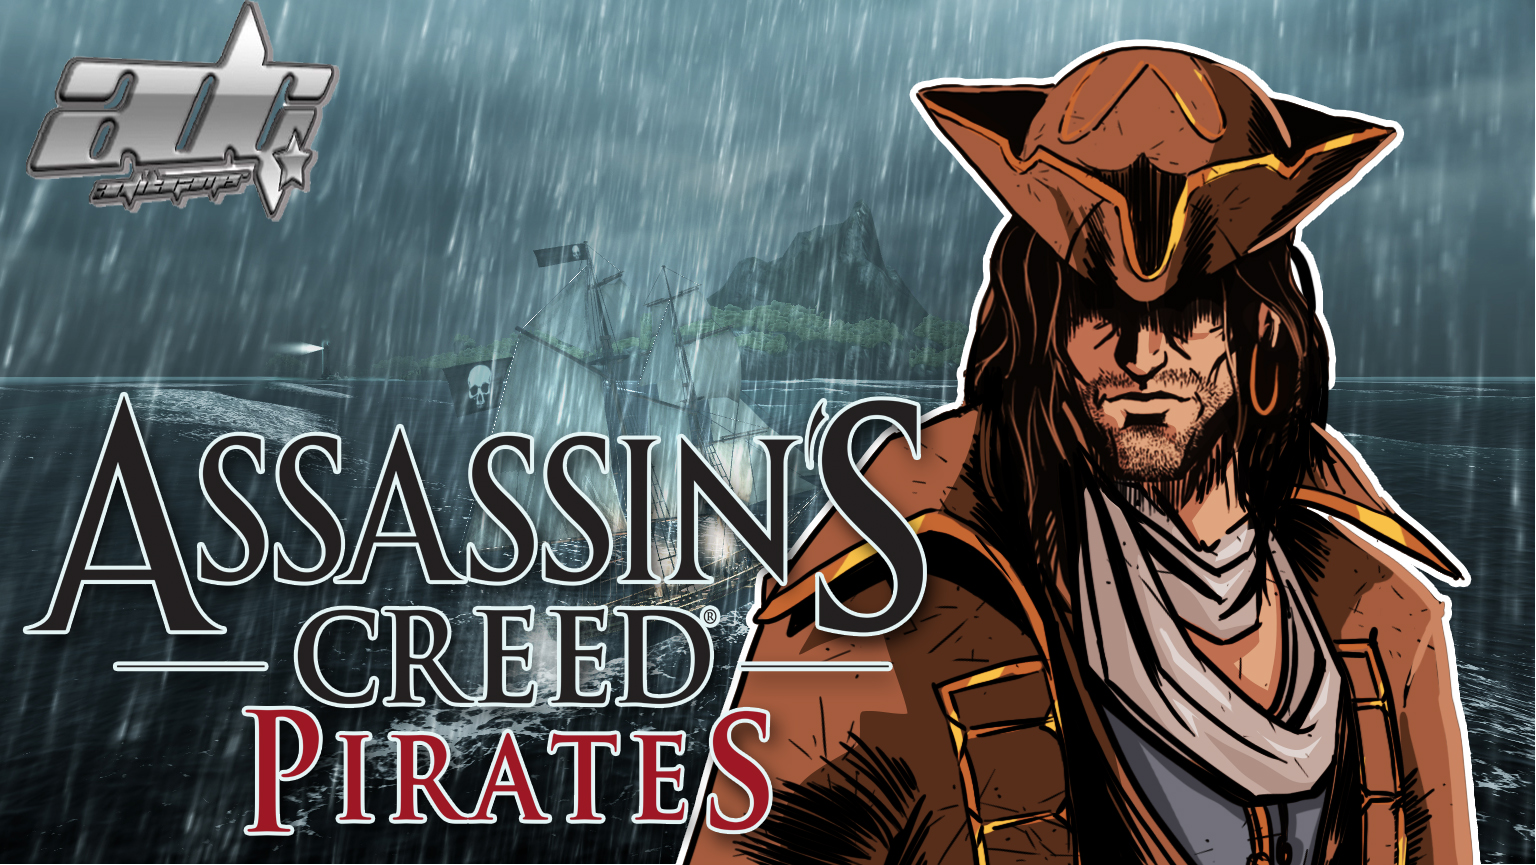 Download Assassin's Creed Pirates full apk! Direct & fast ...